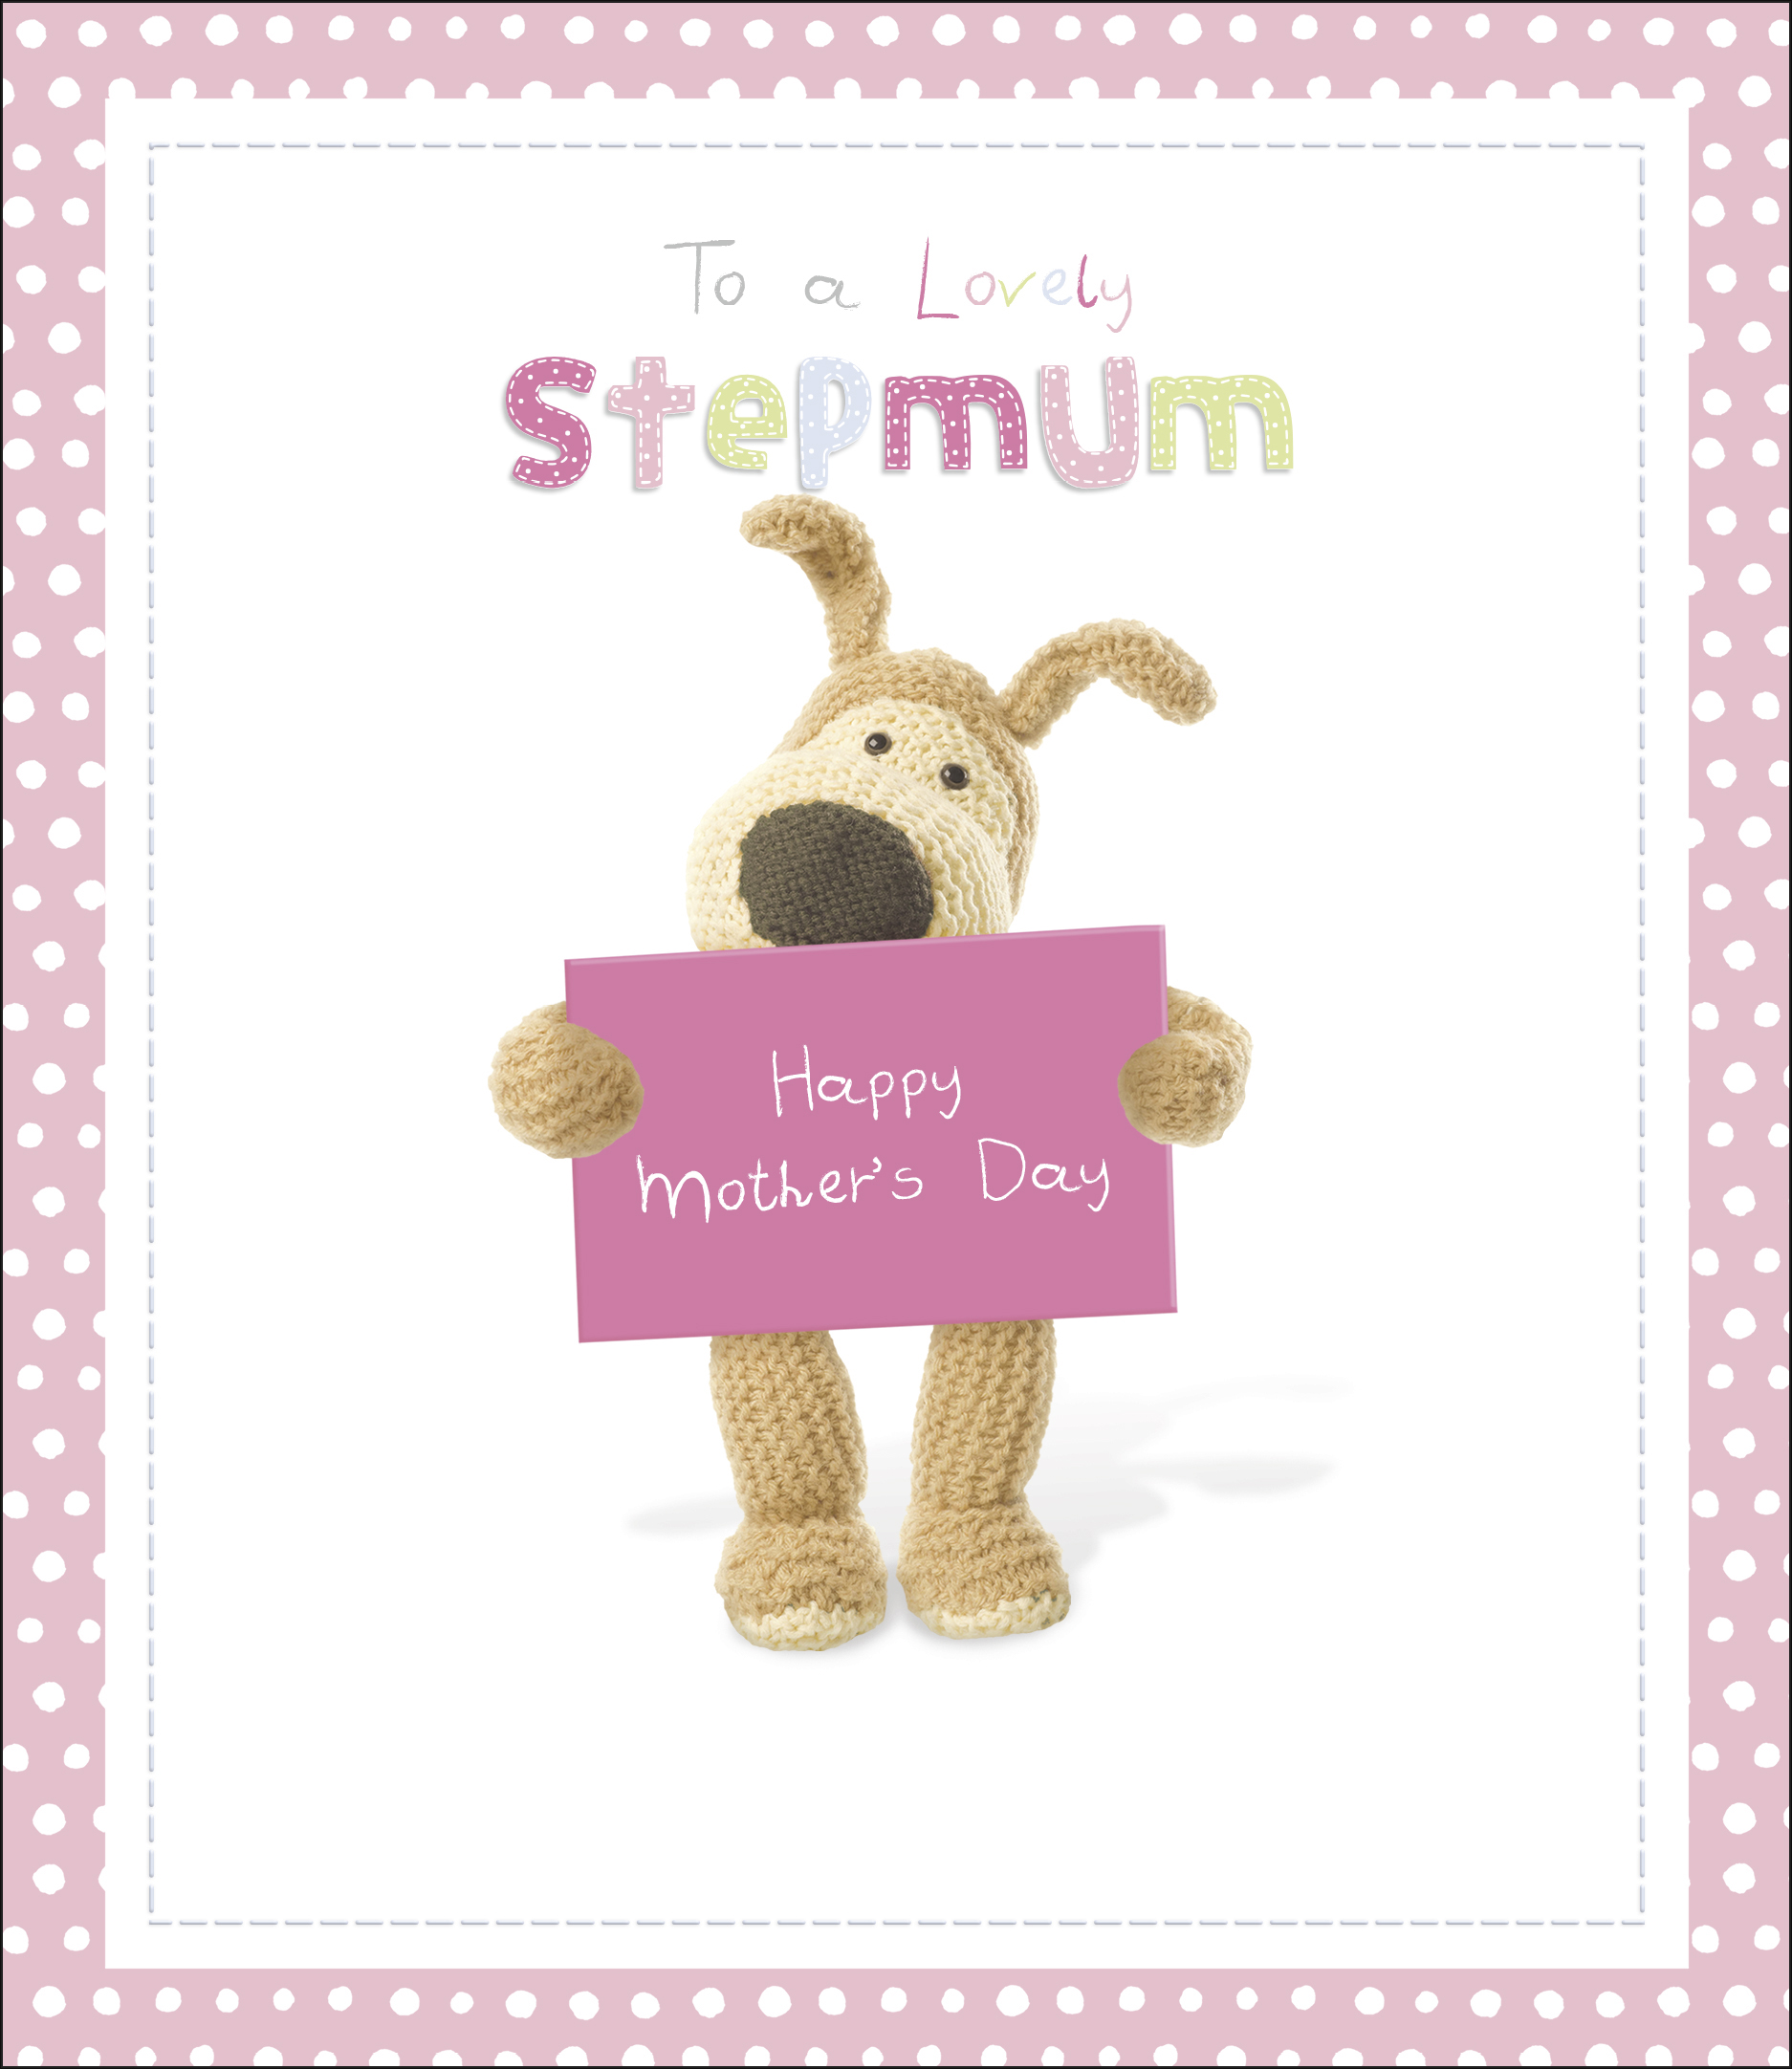 Mothers Day Stepmum Card Mothers Day Card for Stepmum Stepmum Mothers Day Card Lovely Stepmum Mothers Day Card Mothers Day Card Stepmum Happy Mothers Day Stepmum Card